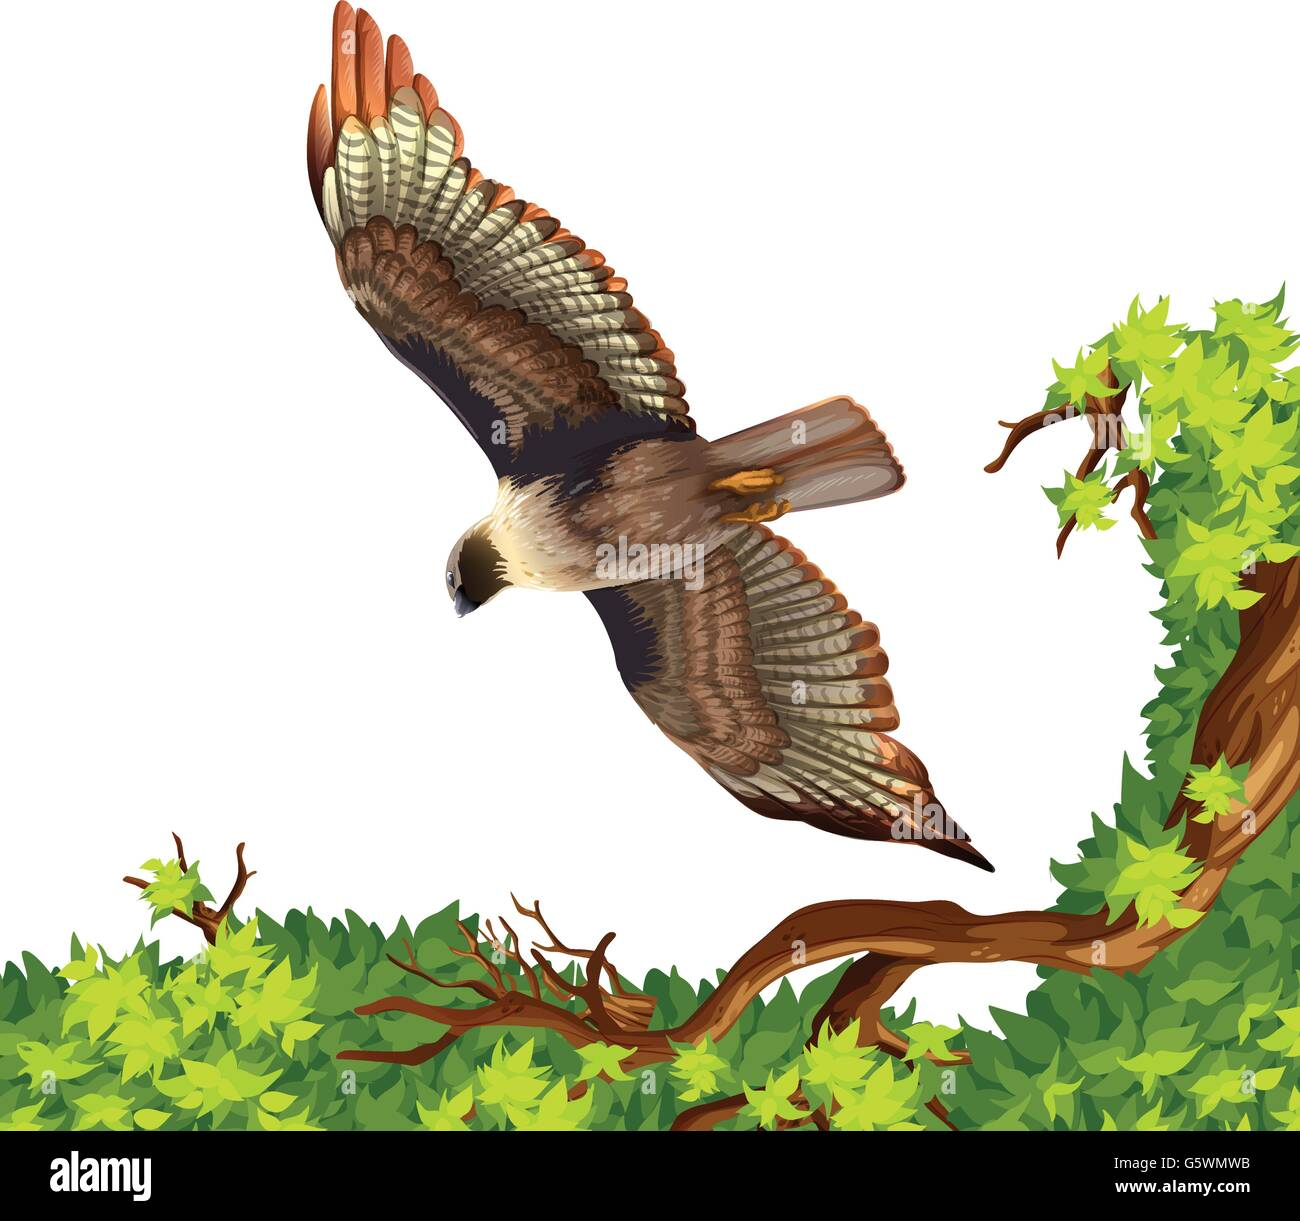 Eagle flying over the tree illustration - Stock Image